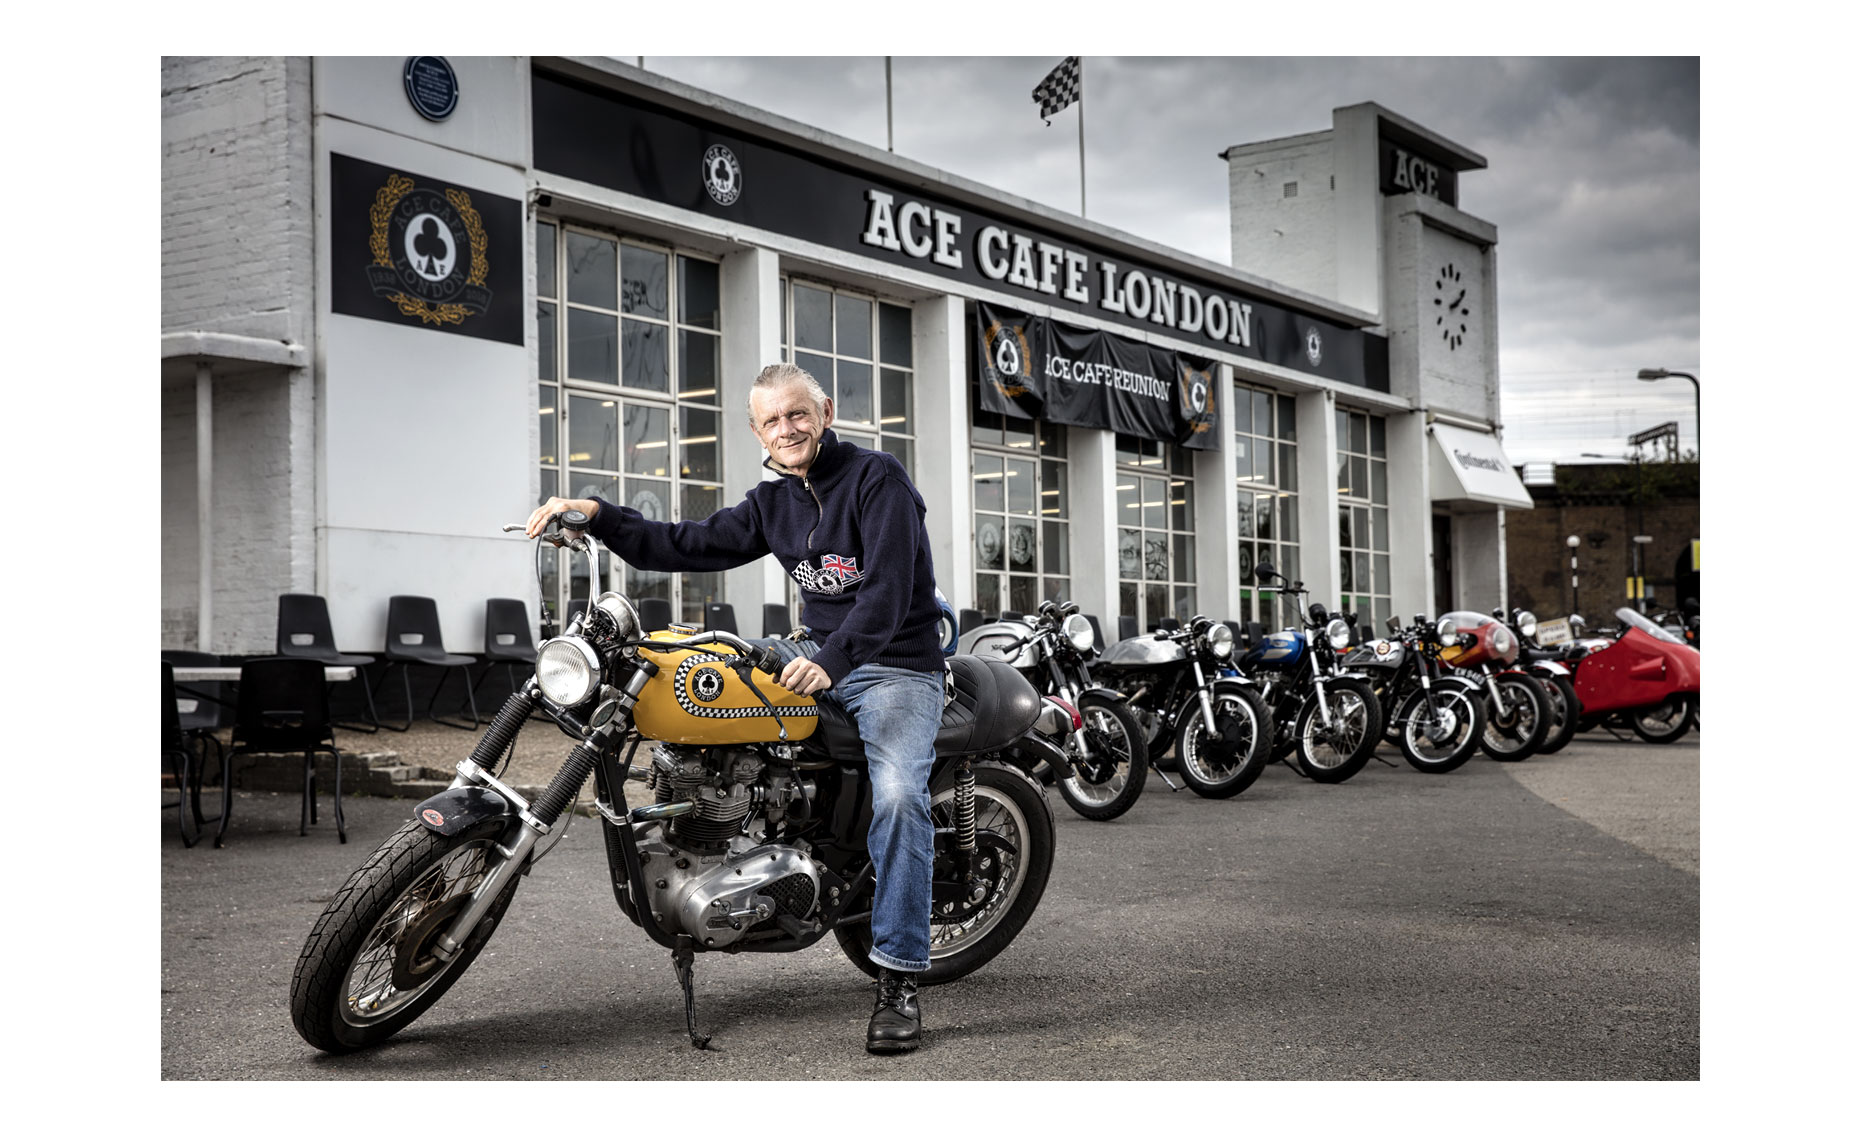 Neil-fraser-photography-ace-cafe